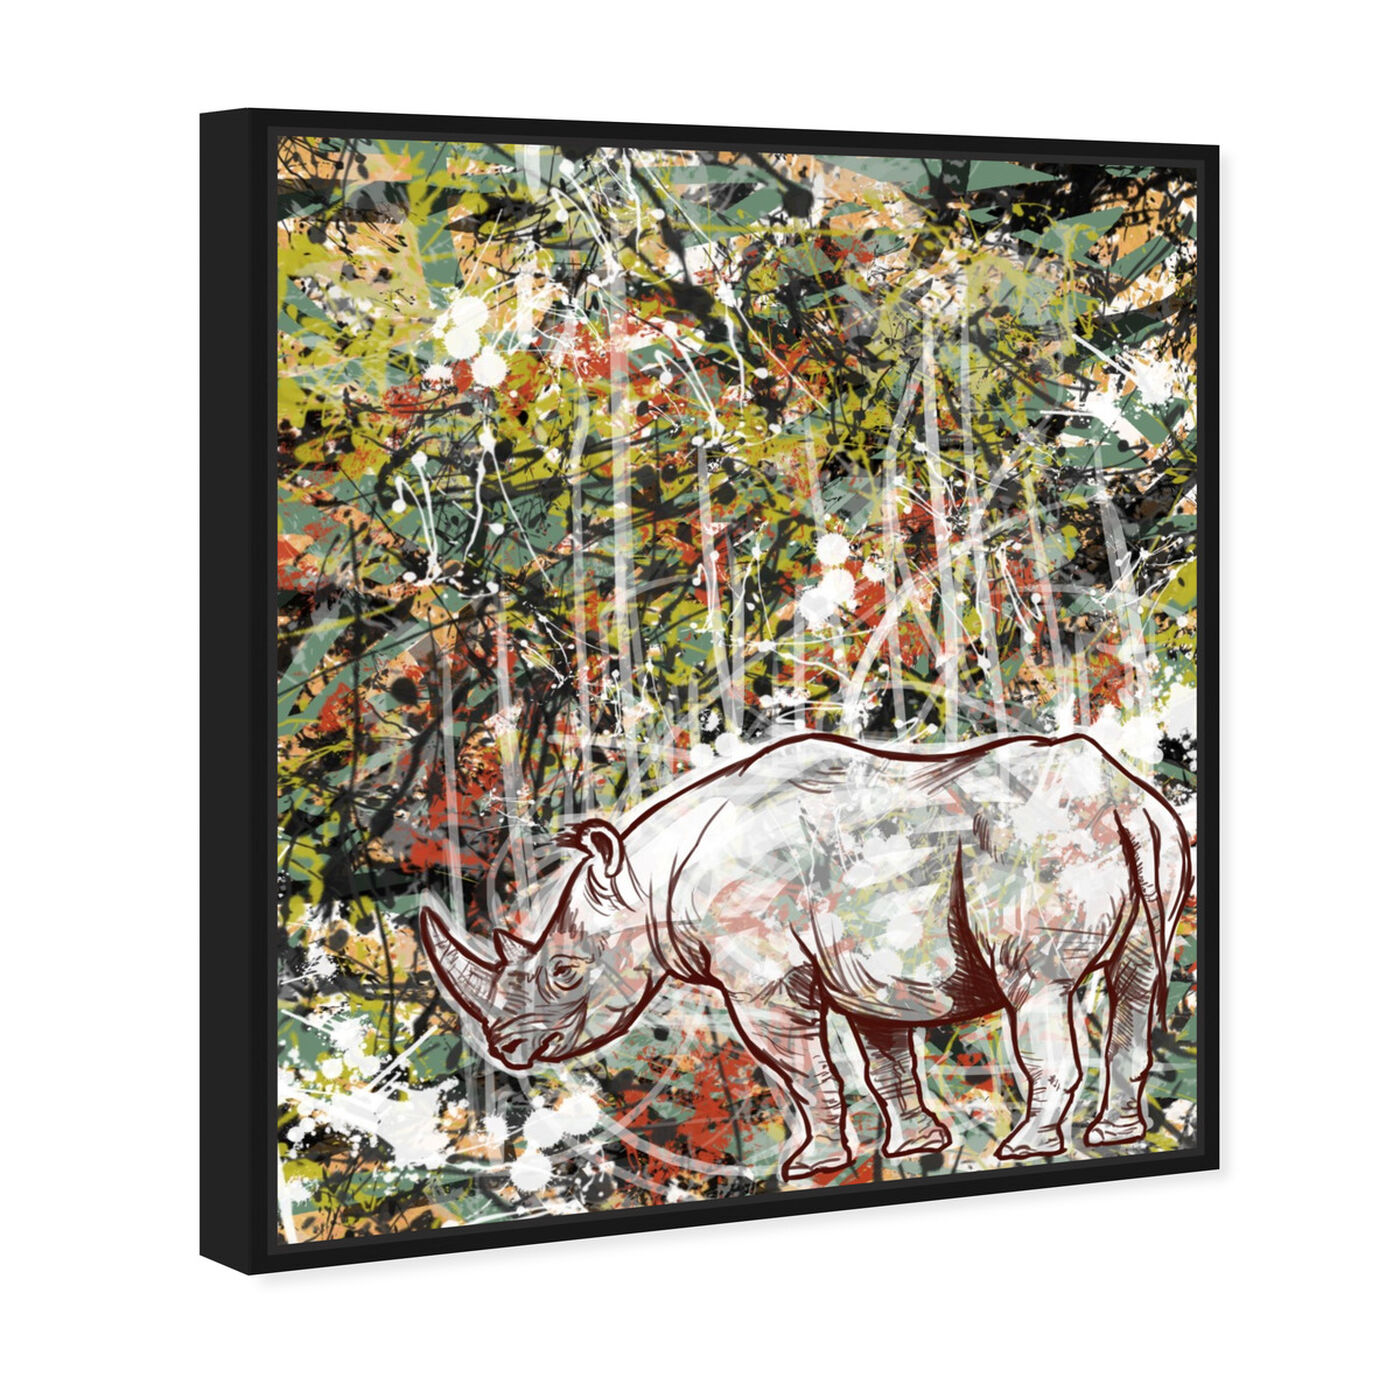 Angled view of Wild featuring animals and zoo and wild animals art.